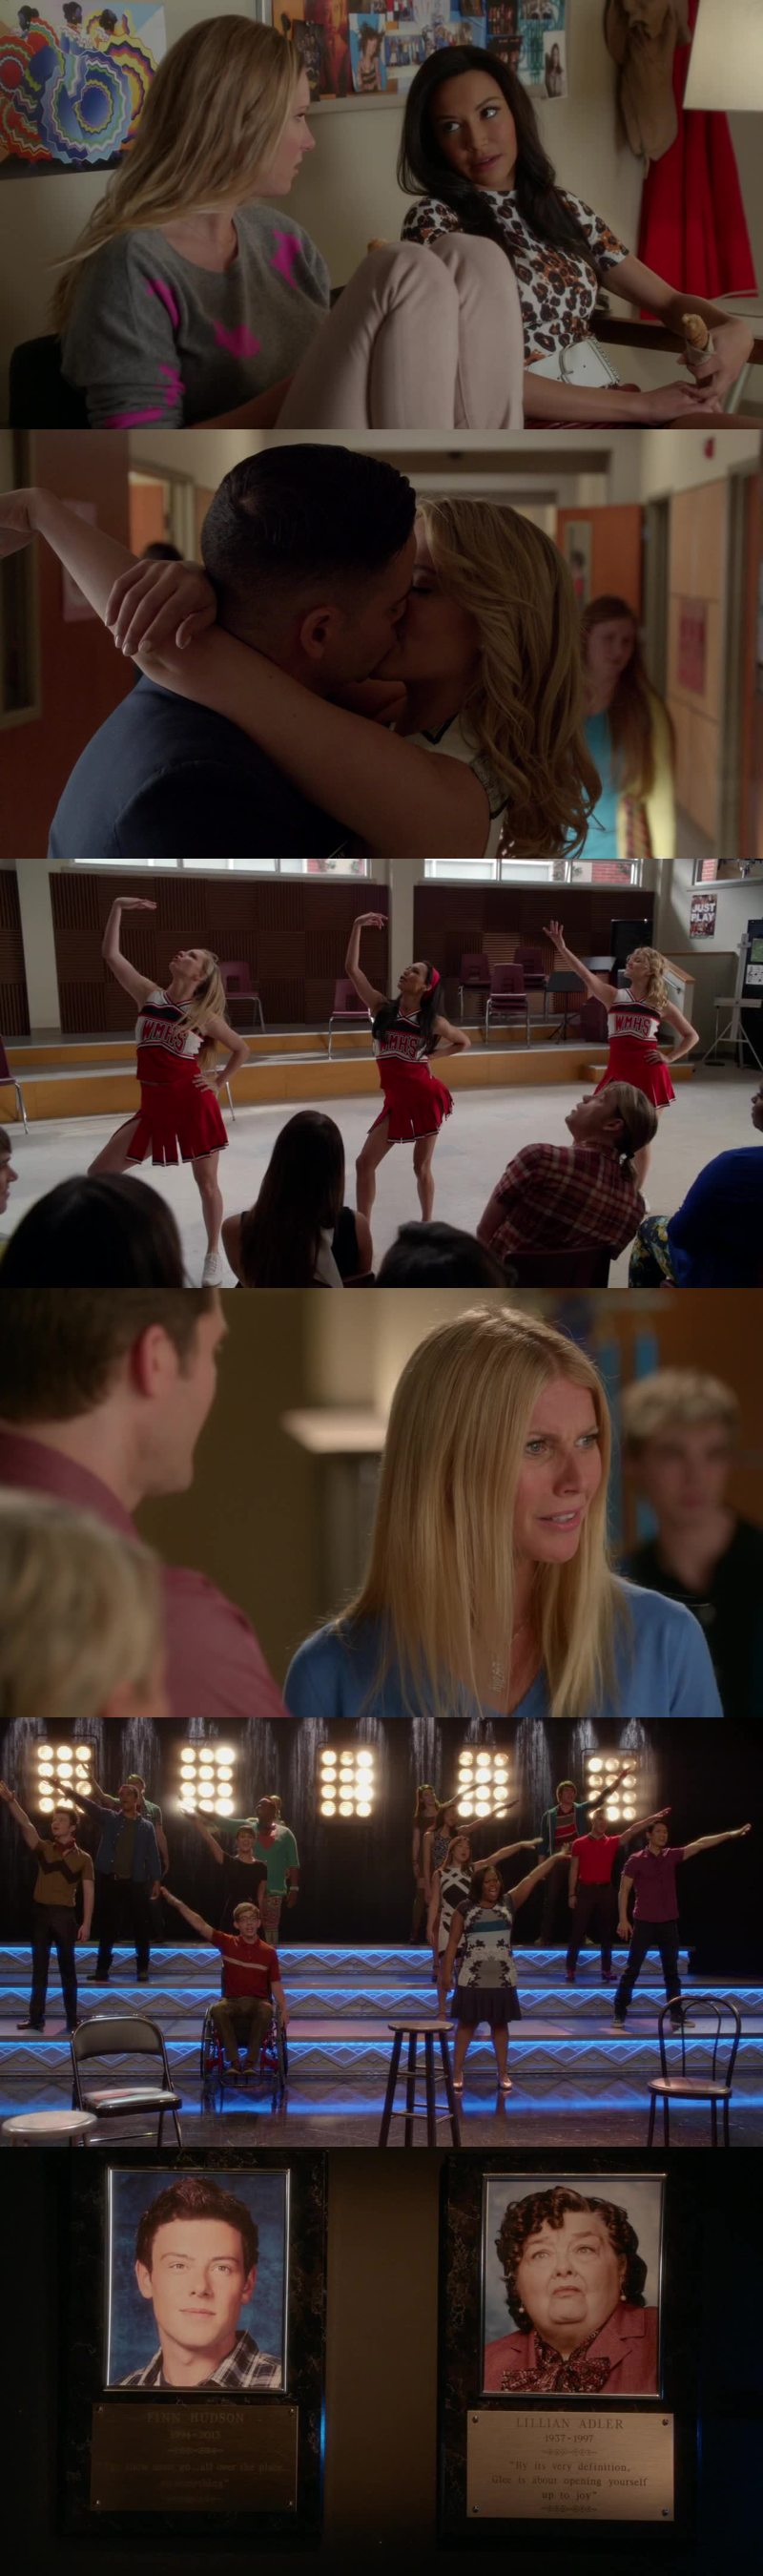 Brittana, Puck&Quinn, The Unholy Trinity, Holly Holiday, all those throwing backs and all those emotions ended up in one of the best Glee episodes ever 😍  ❤️❤️❤️  💜